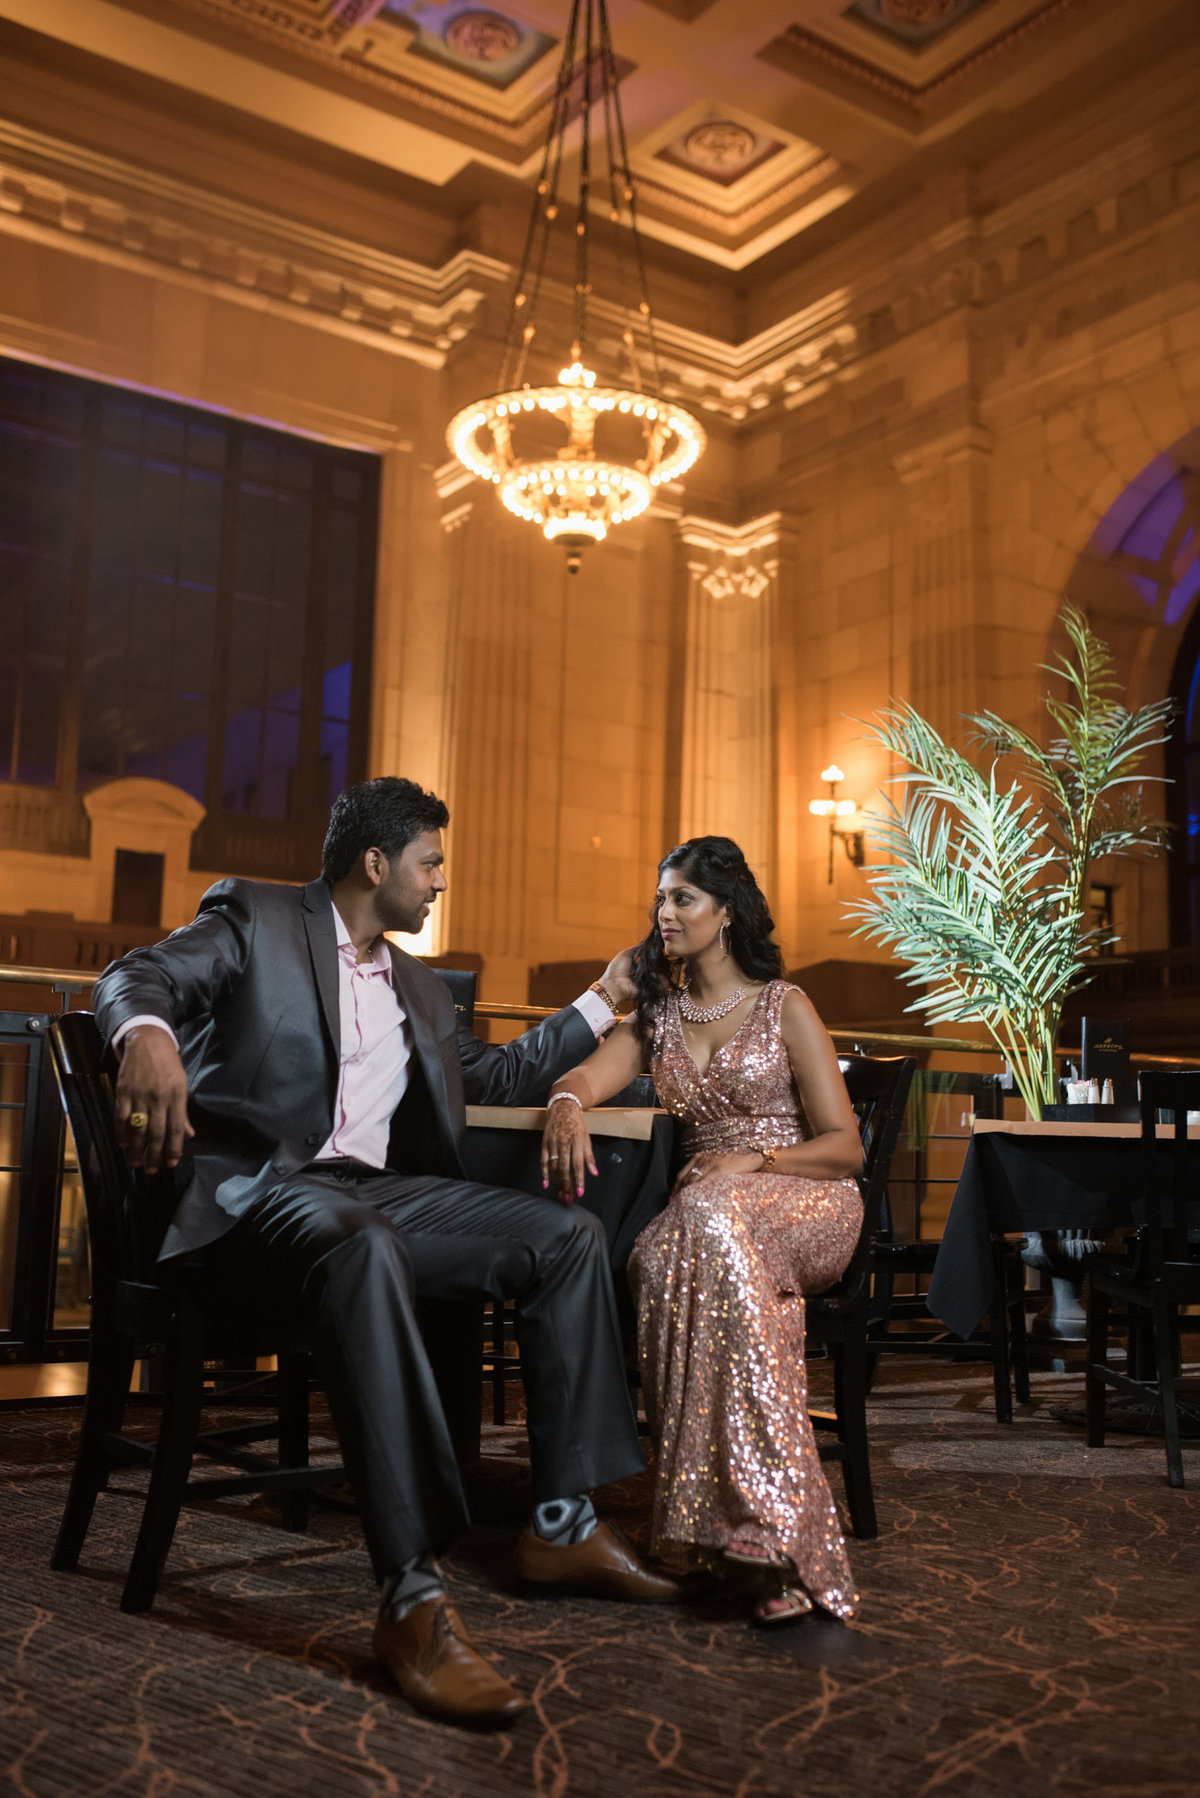 Union-station-indian-wedding-0004